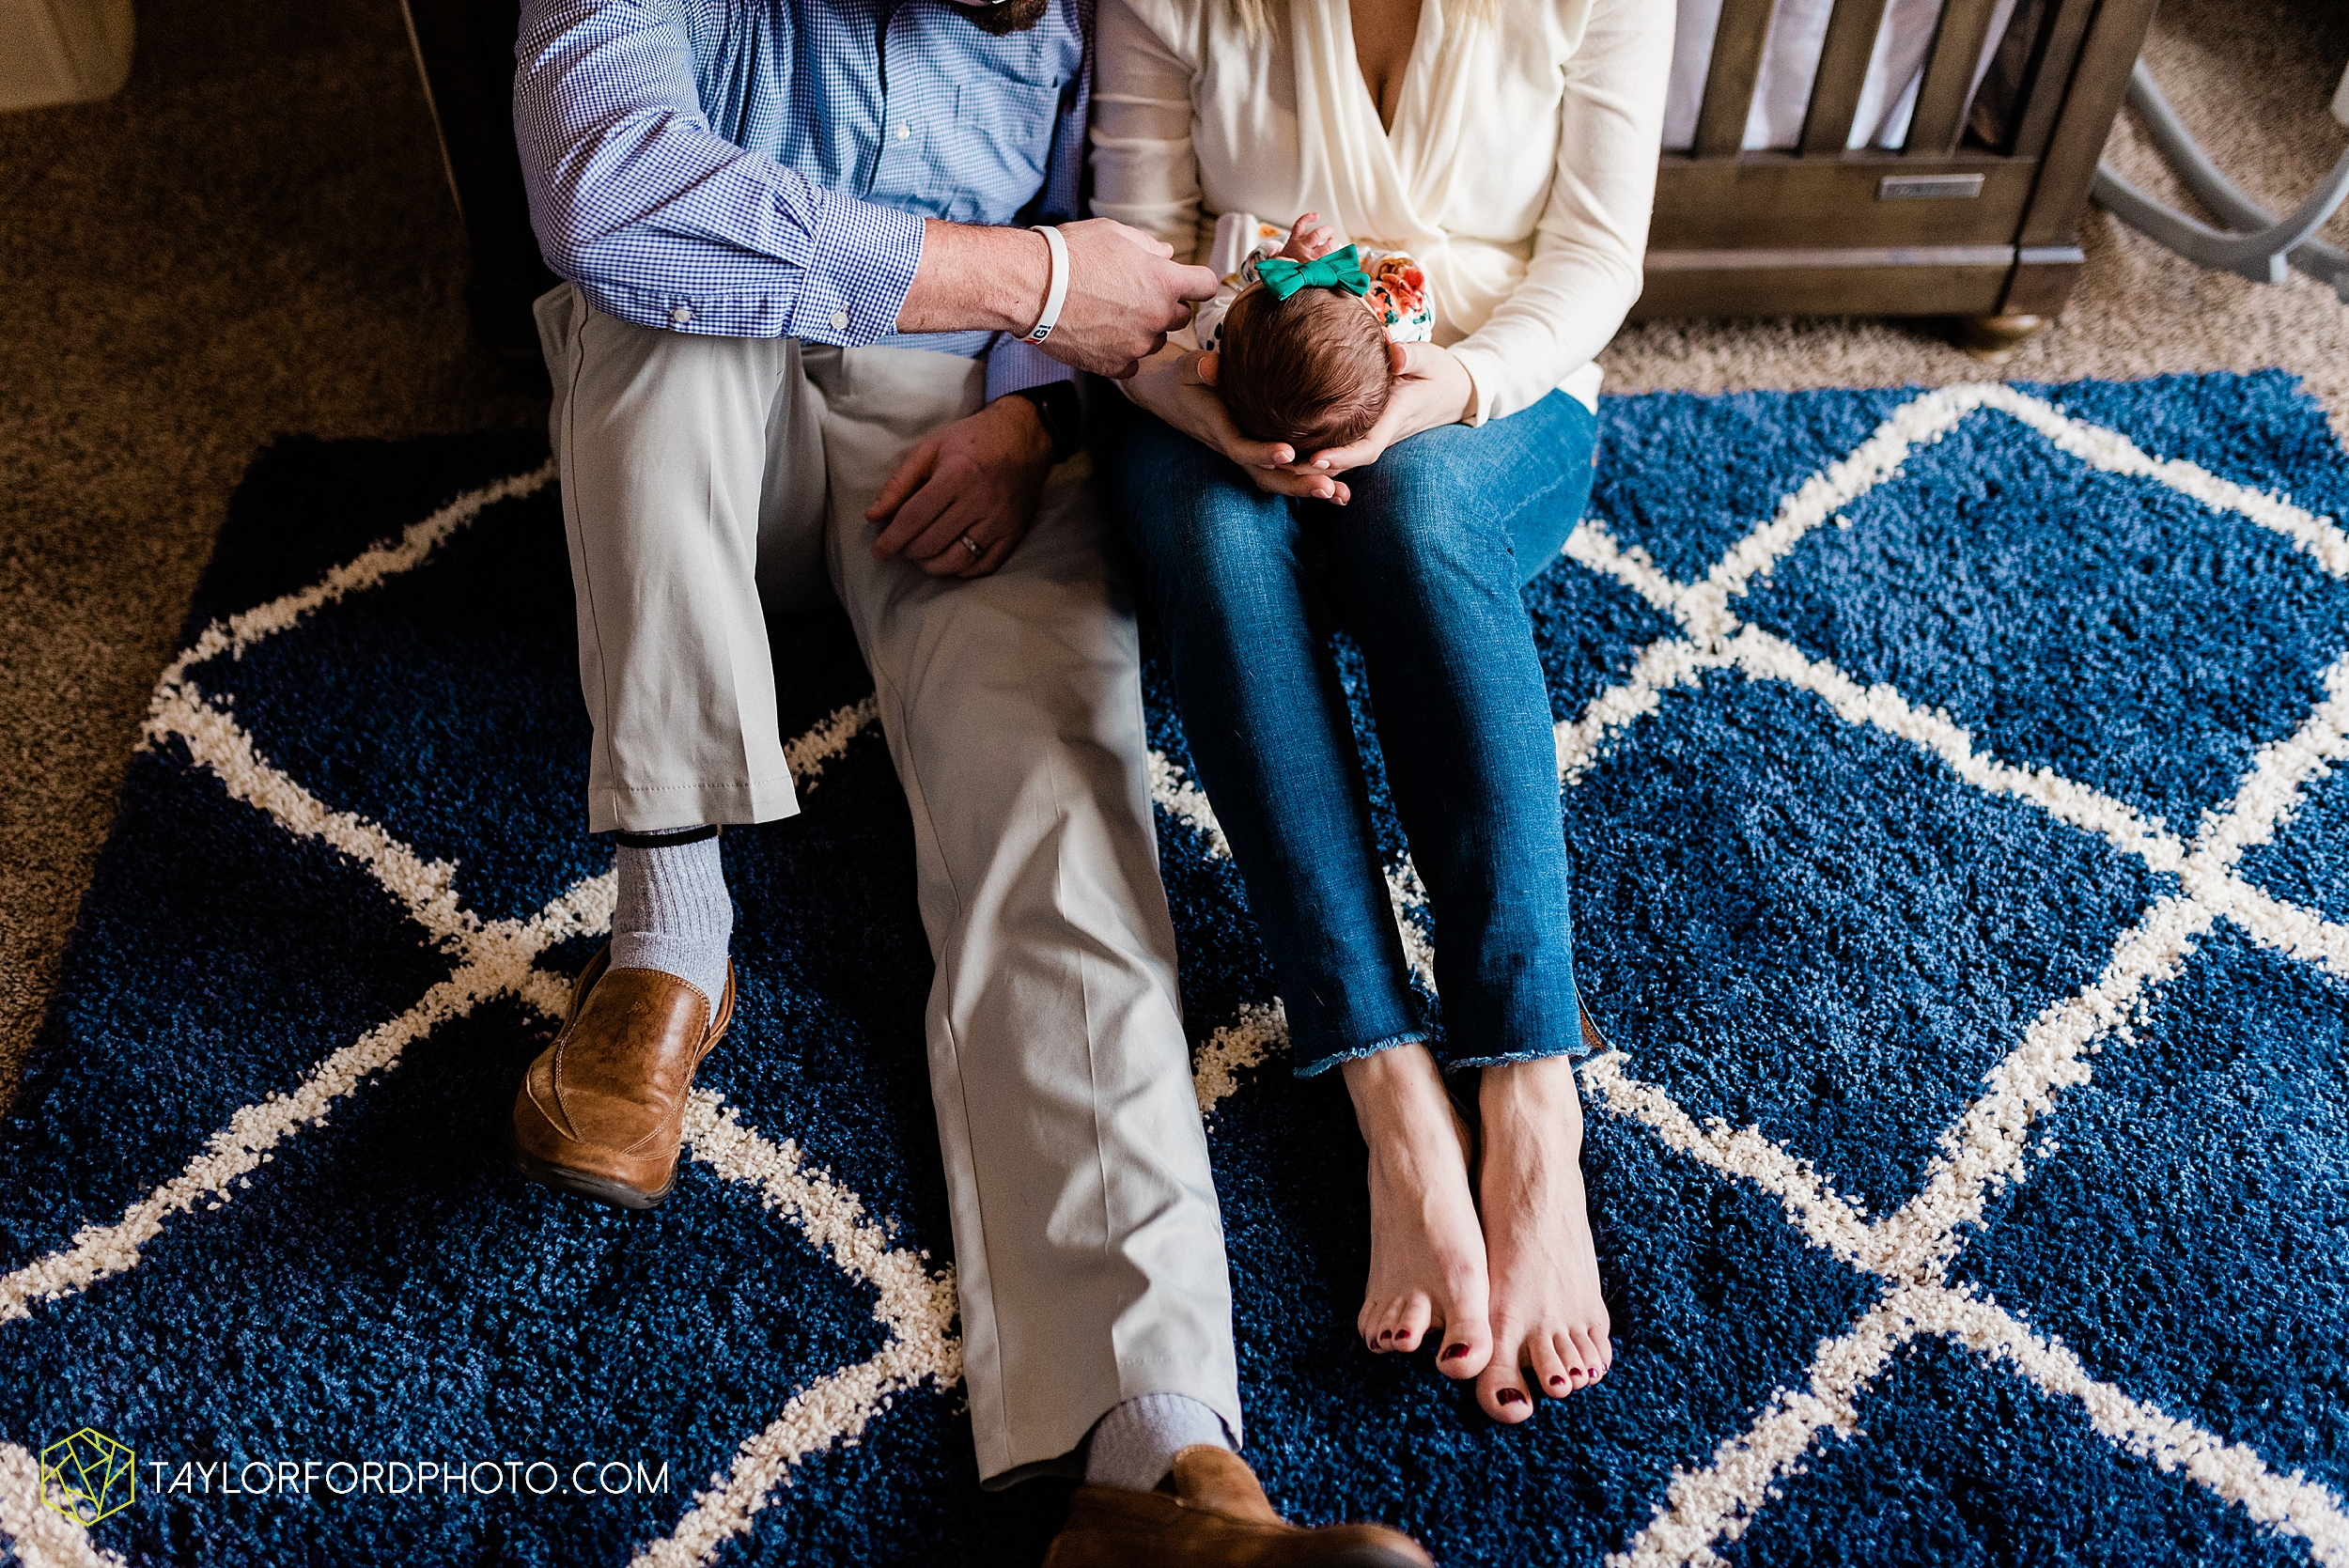 ashley-aaron-noraa-lifestyle-at-home-family-newborn-blacklick-columbus-ohio-photography-taylor-ford-hirschy-photographer_2335.jpg